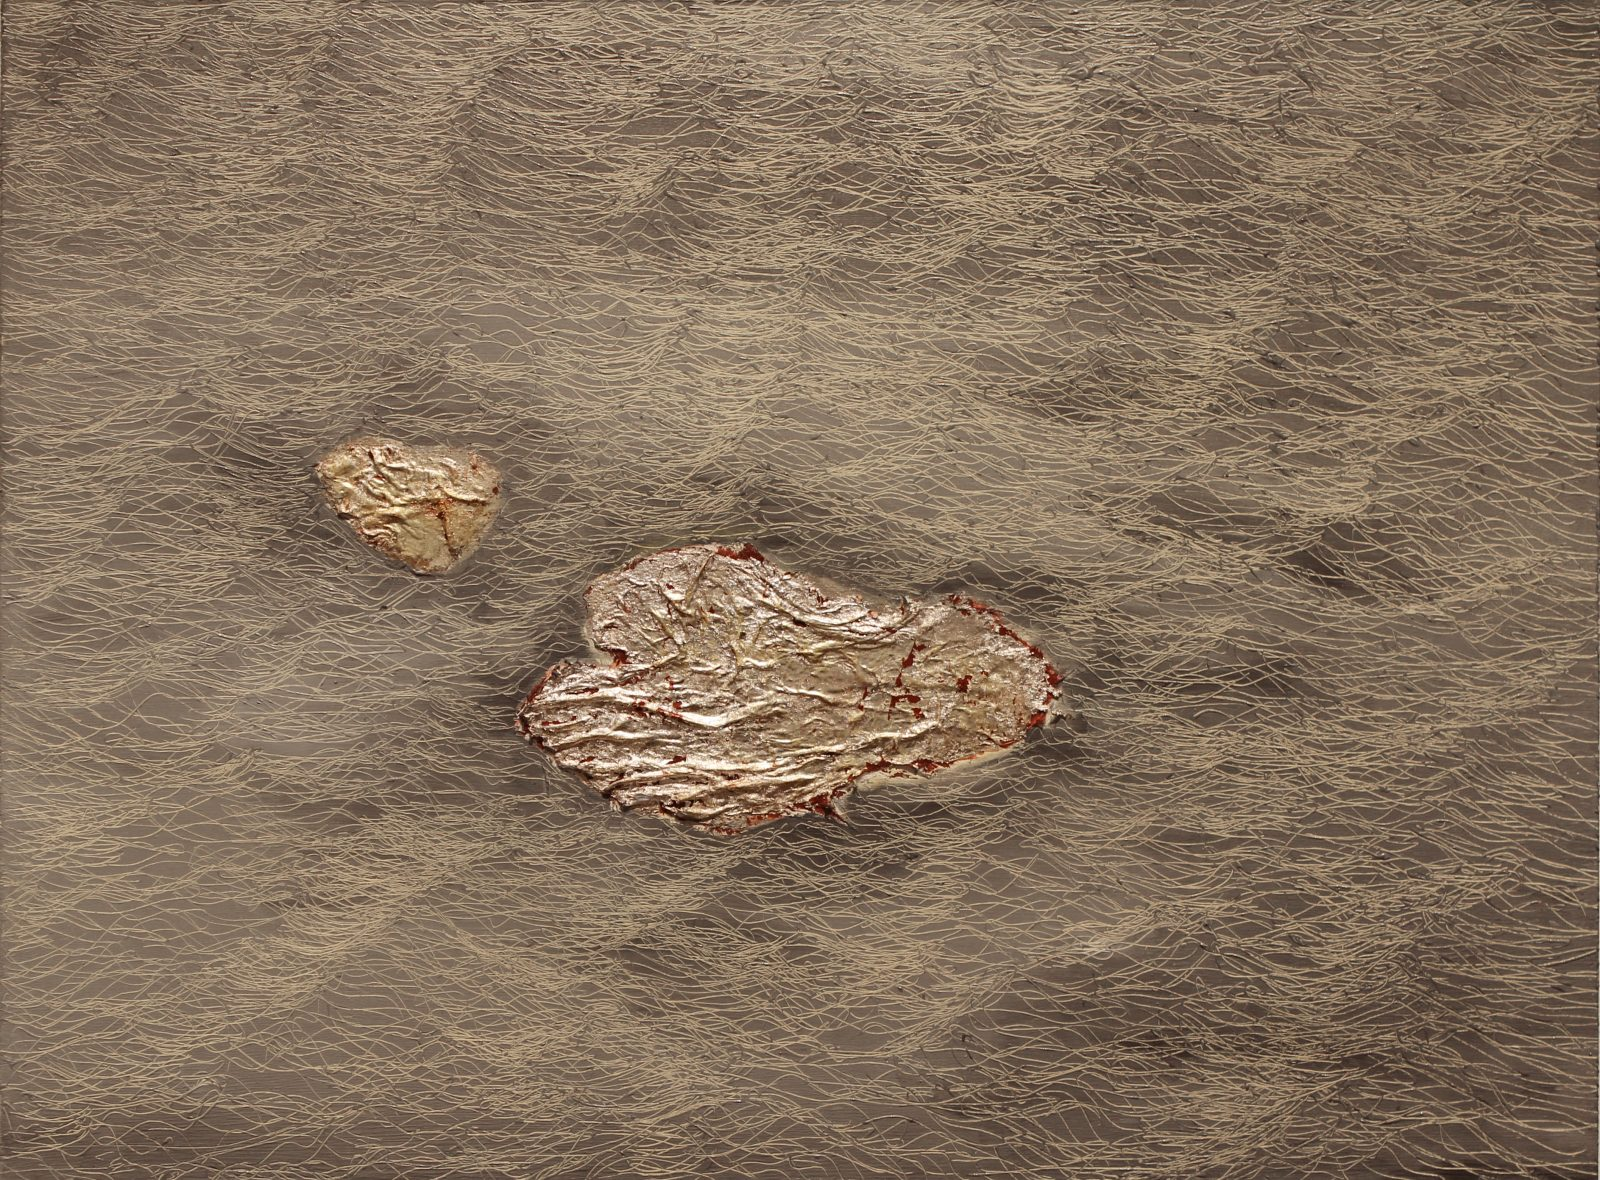 S2,18 x 24, pure silver, red clay, oil paint, 2013